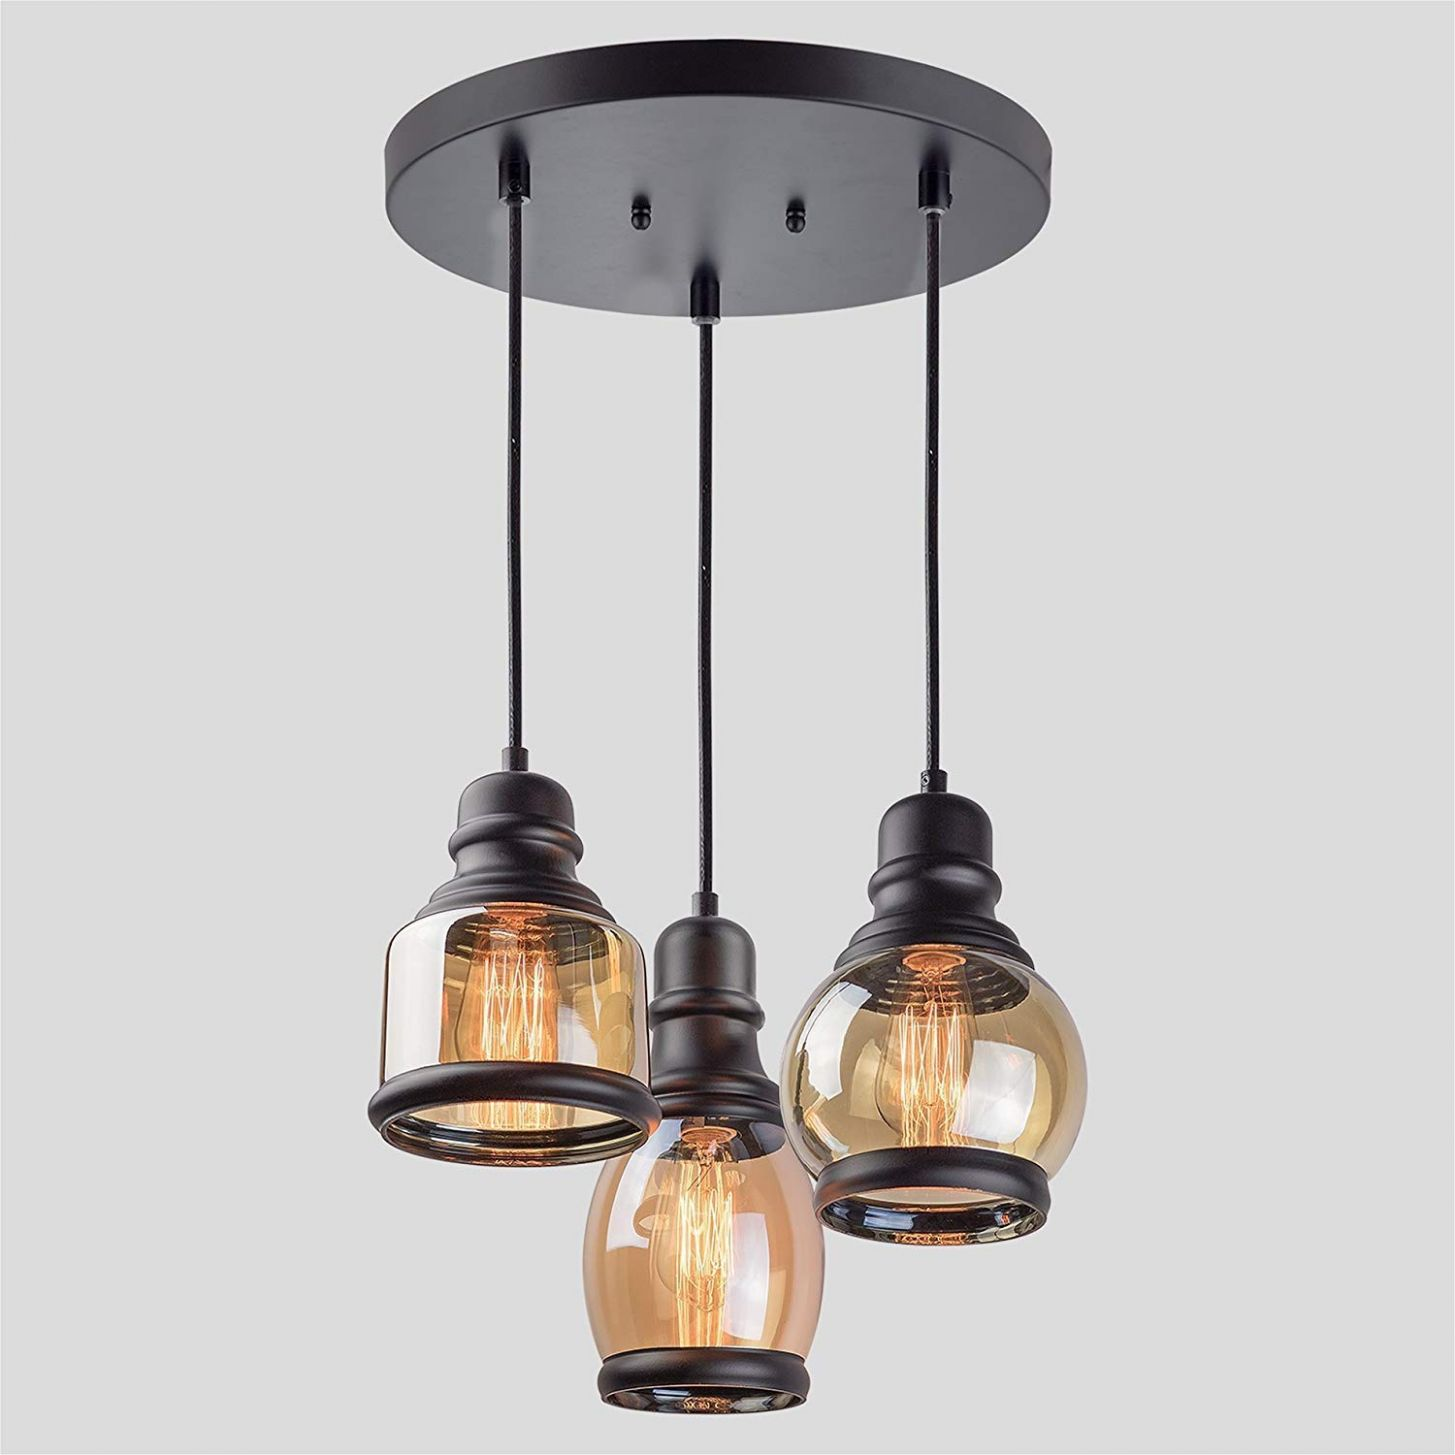 Ultimate Decorative Classic Ceiling Pendant Lamp for Living Room Bedroom  and Home Decor (Multicolour)